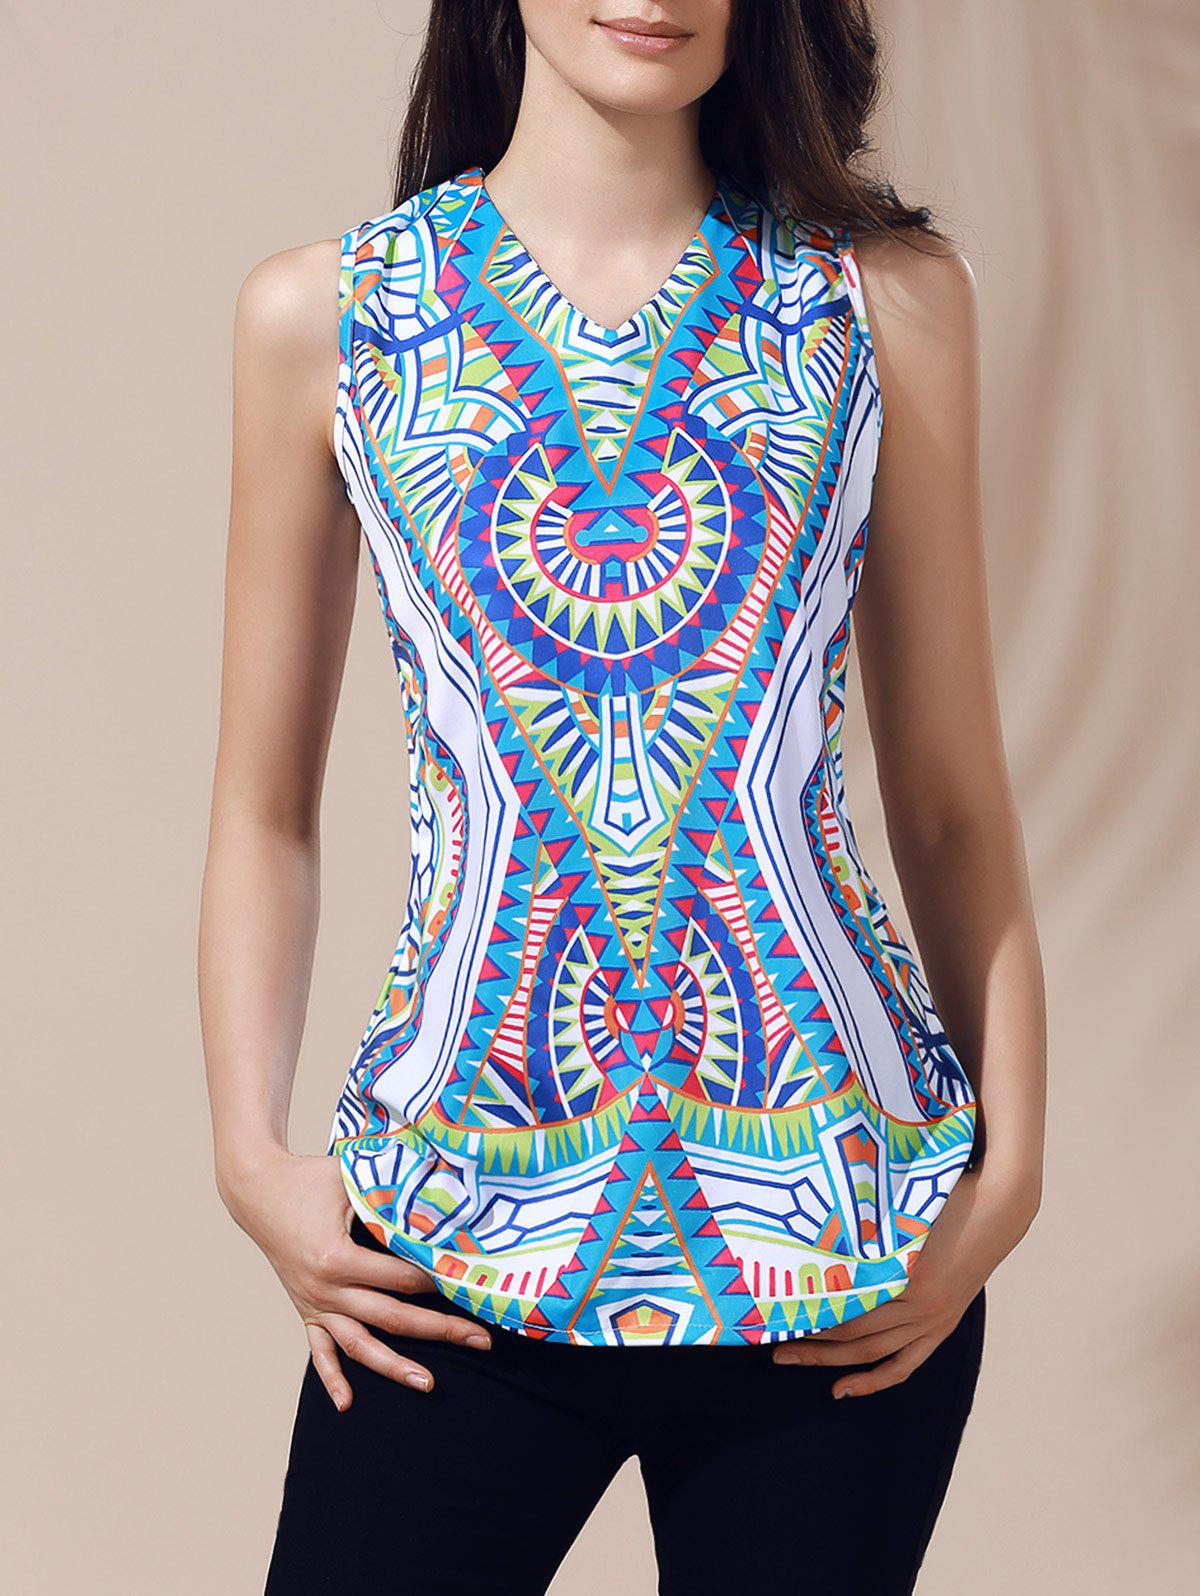 Ethnic Women's V-Neck Printed Cut Out Top - GREEN S